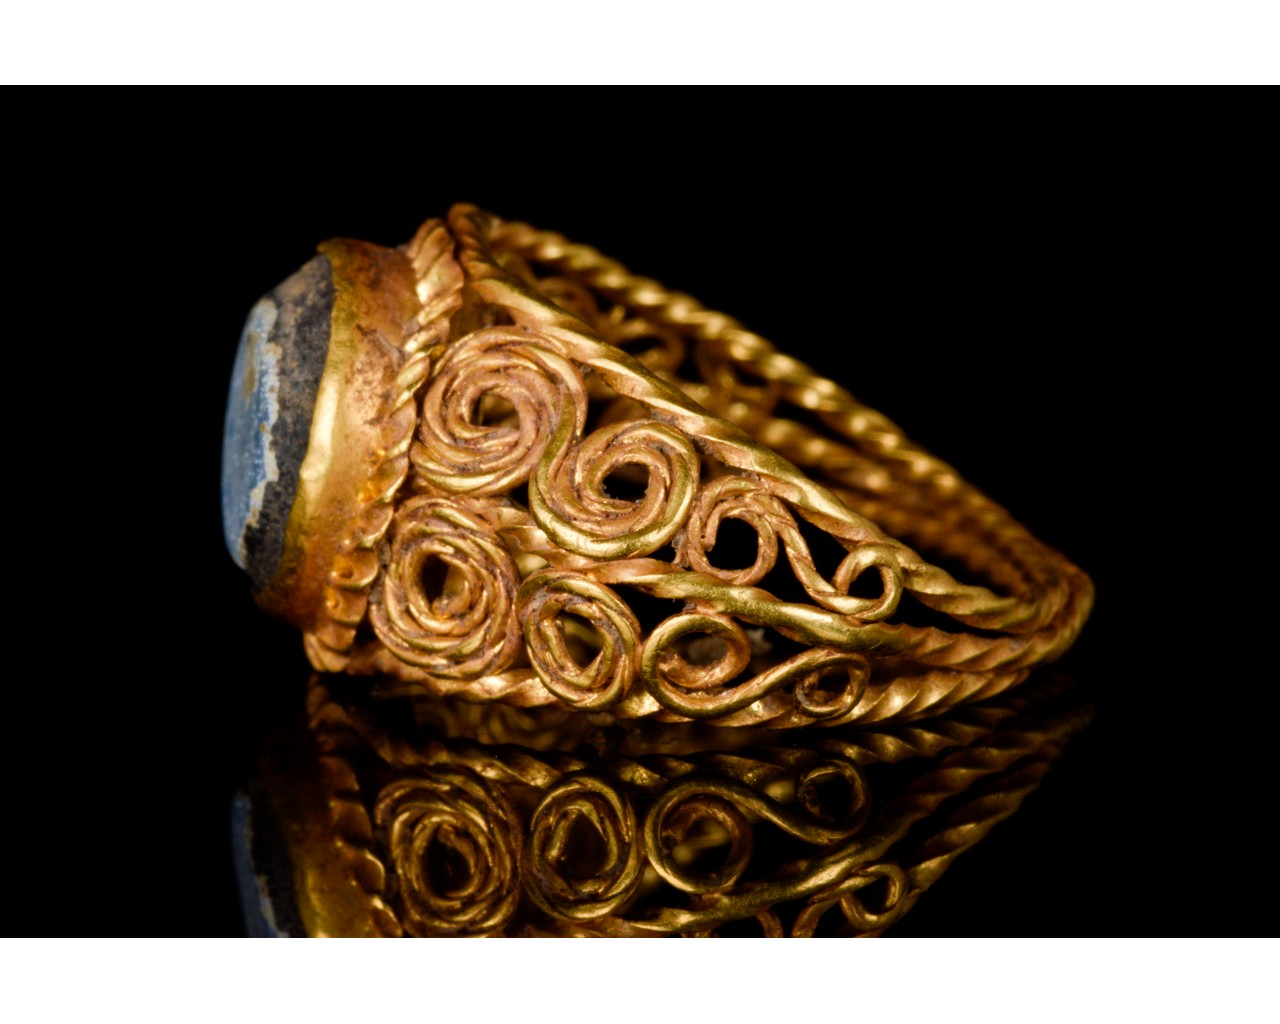 LATE ROMAN GOLD AND GLASS RING - EX CHRISTIES - FULL ANALYSIS - Image 3 of 8